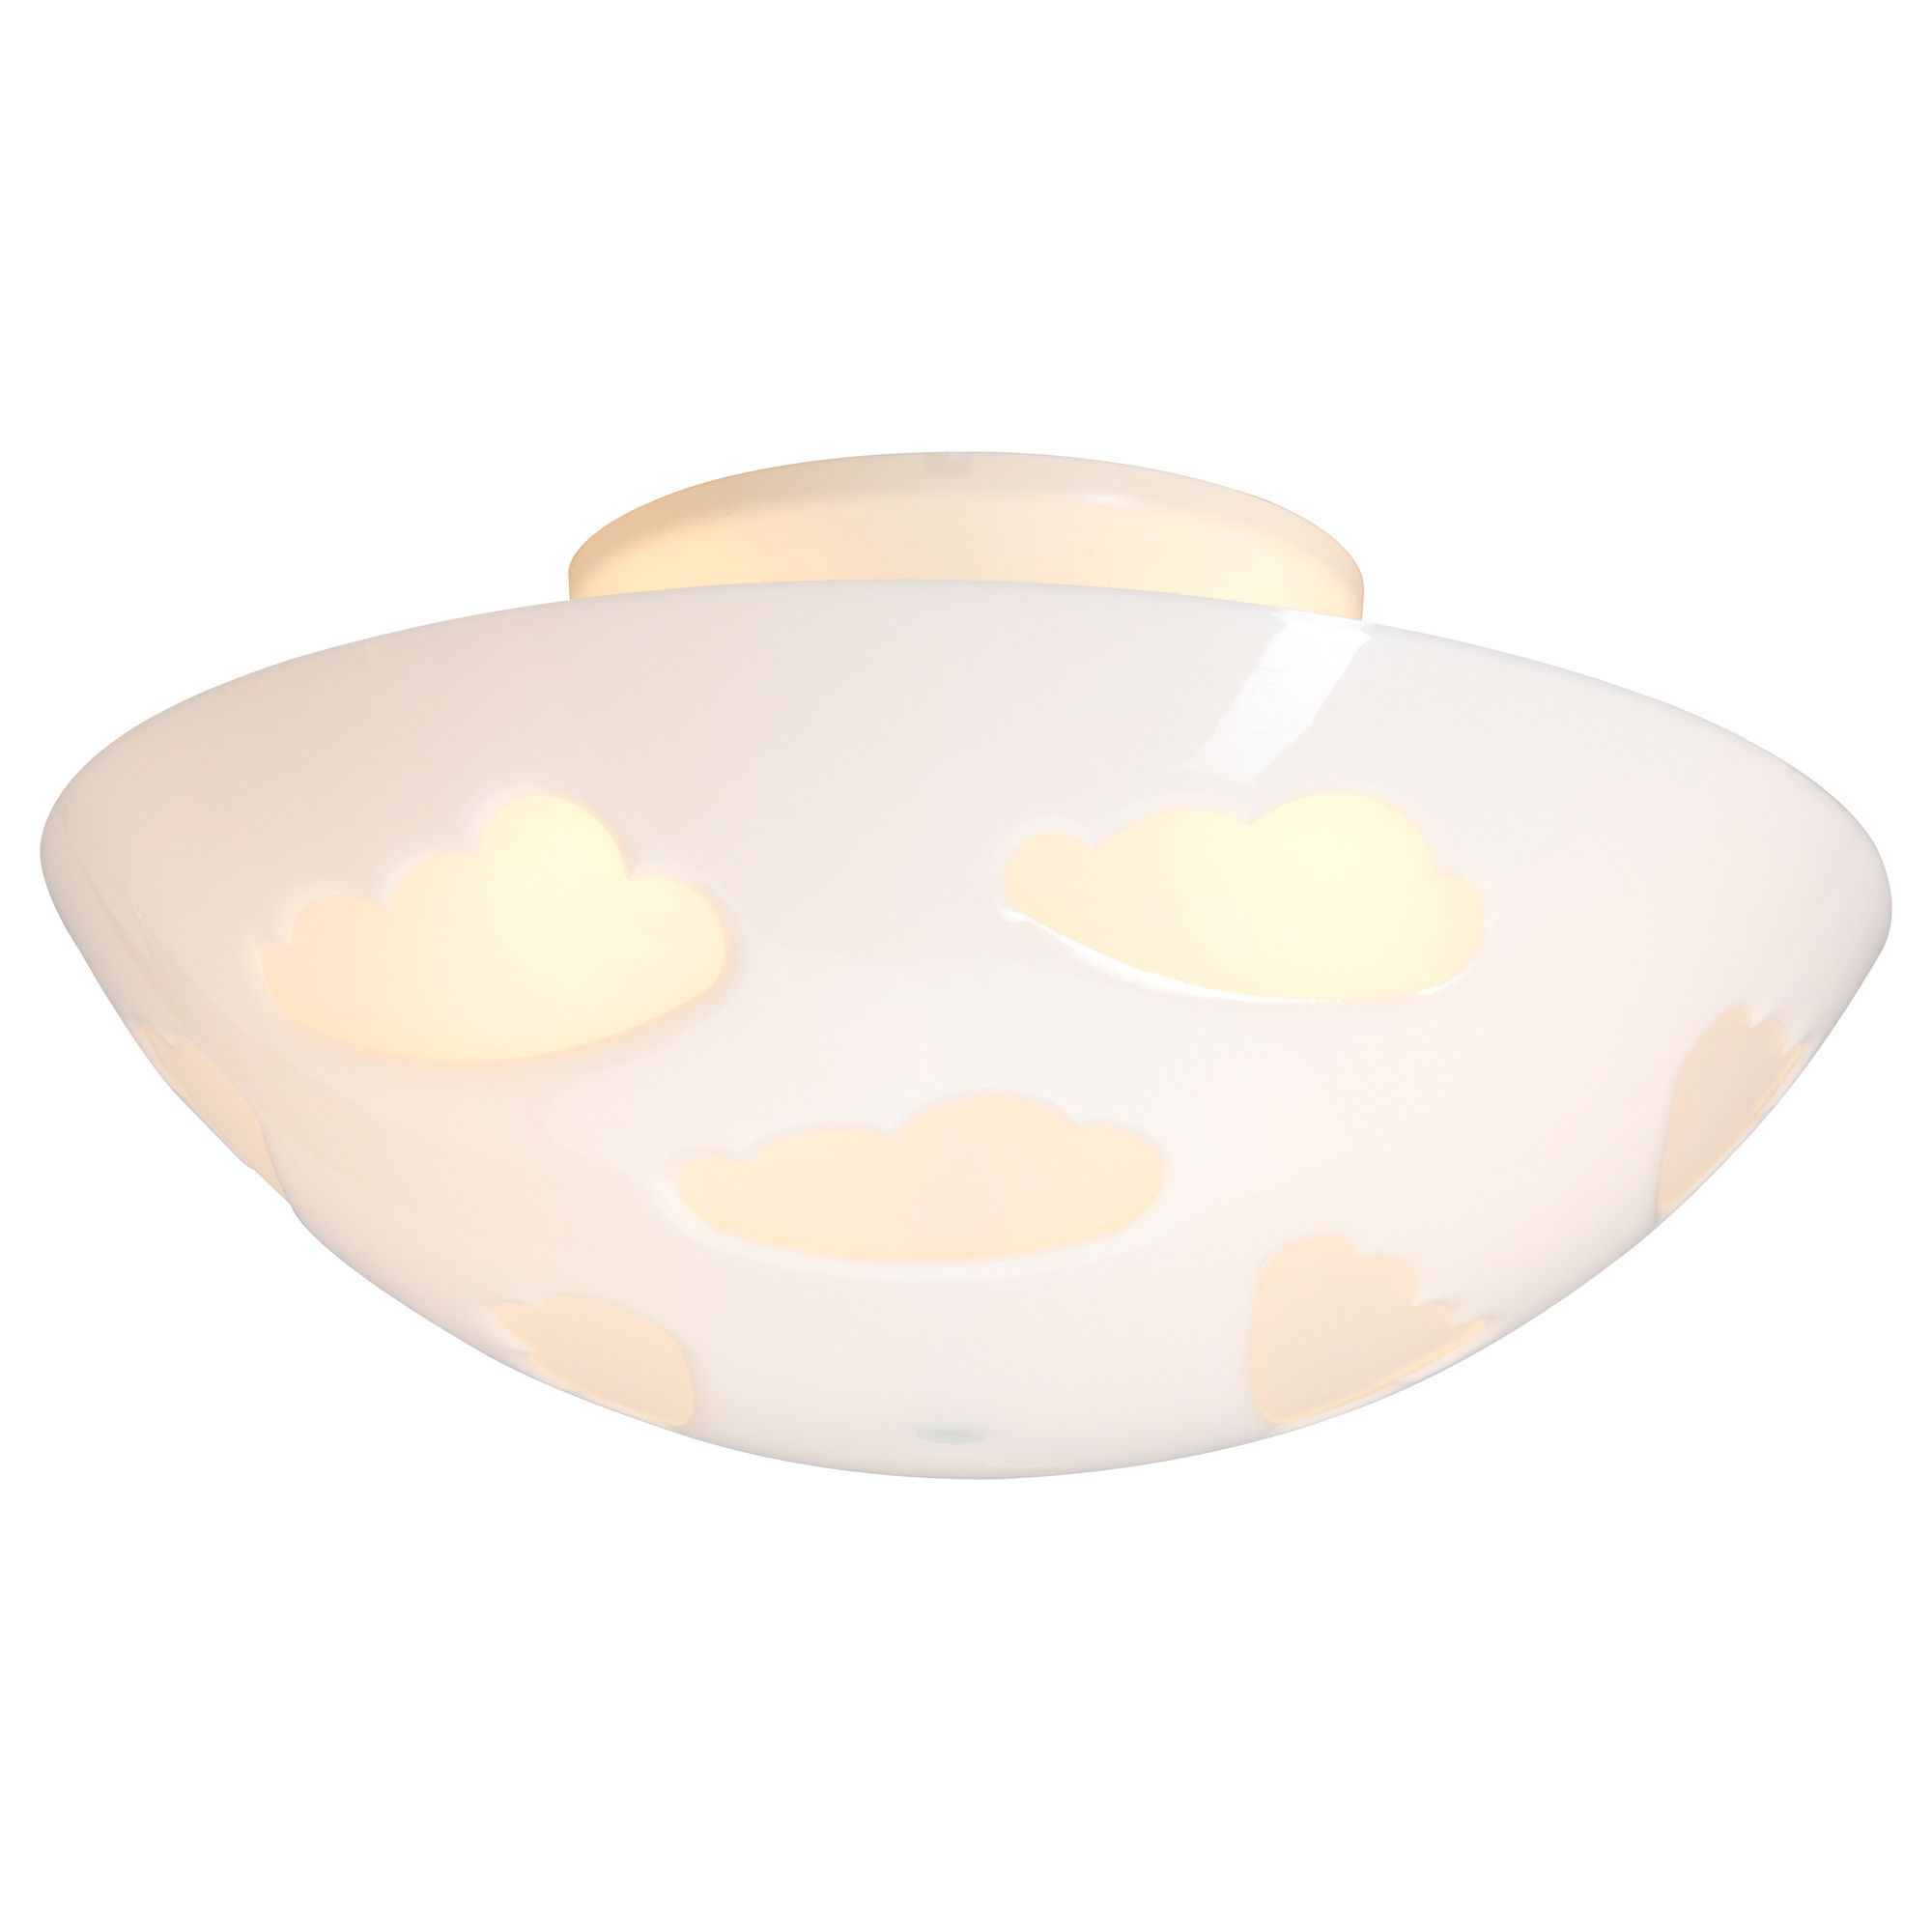 Skojig Ceiling Lamp White Lighting Pinterest Ikea